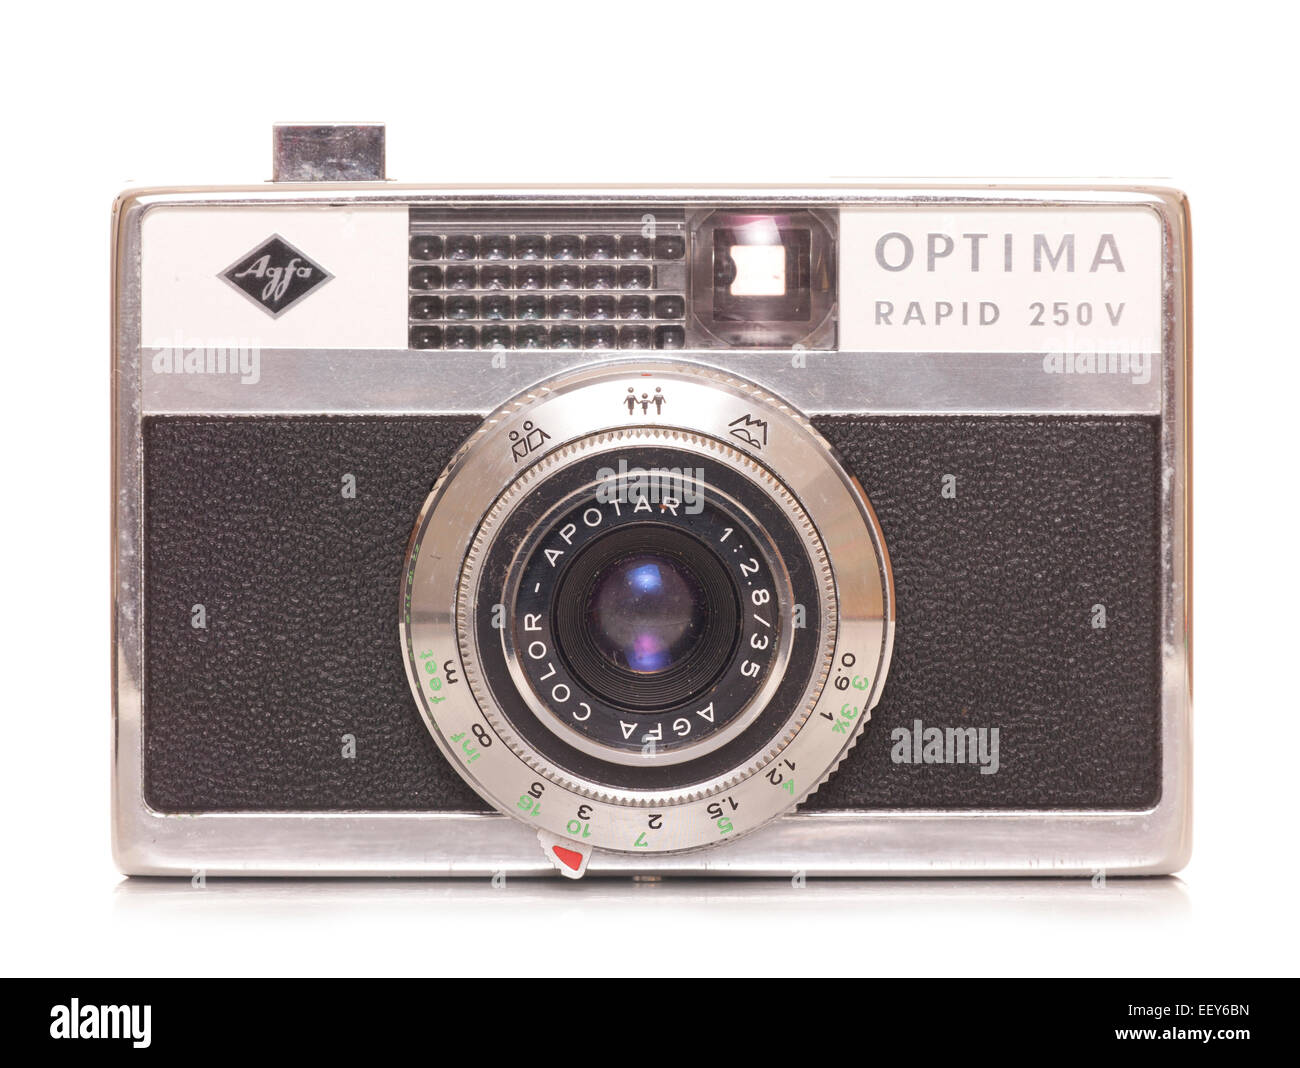 Agfa Optima rapid 250v slr film camera cutout - Stock Image